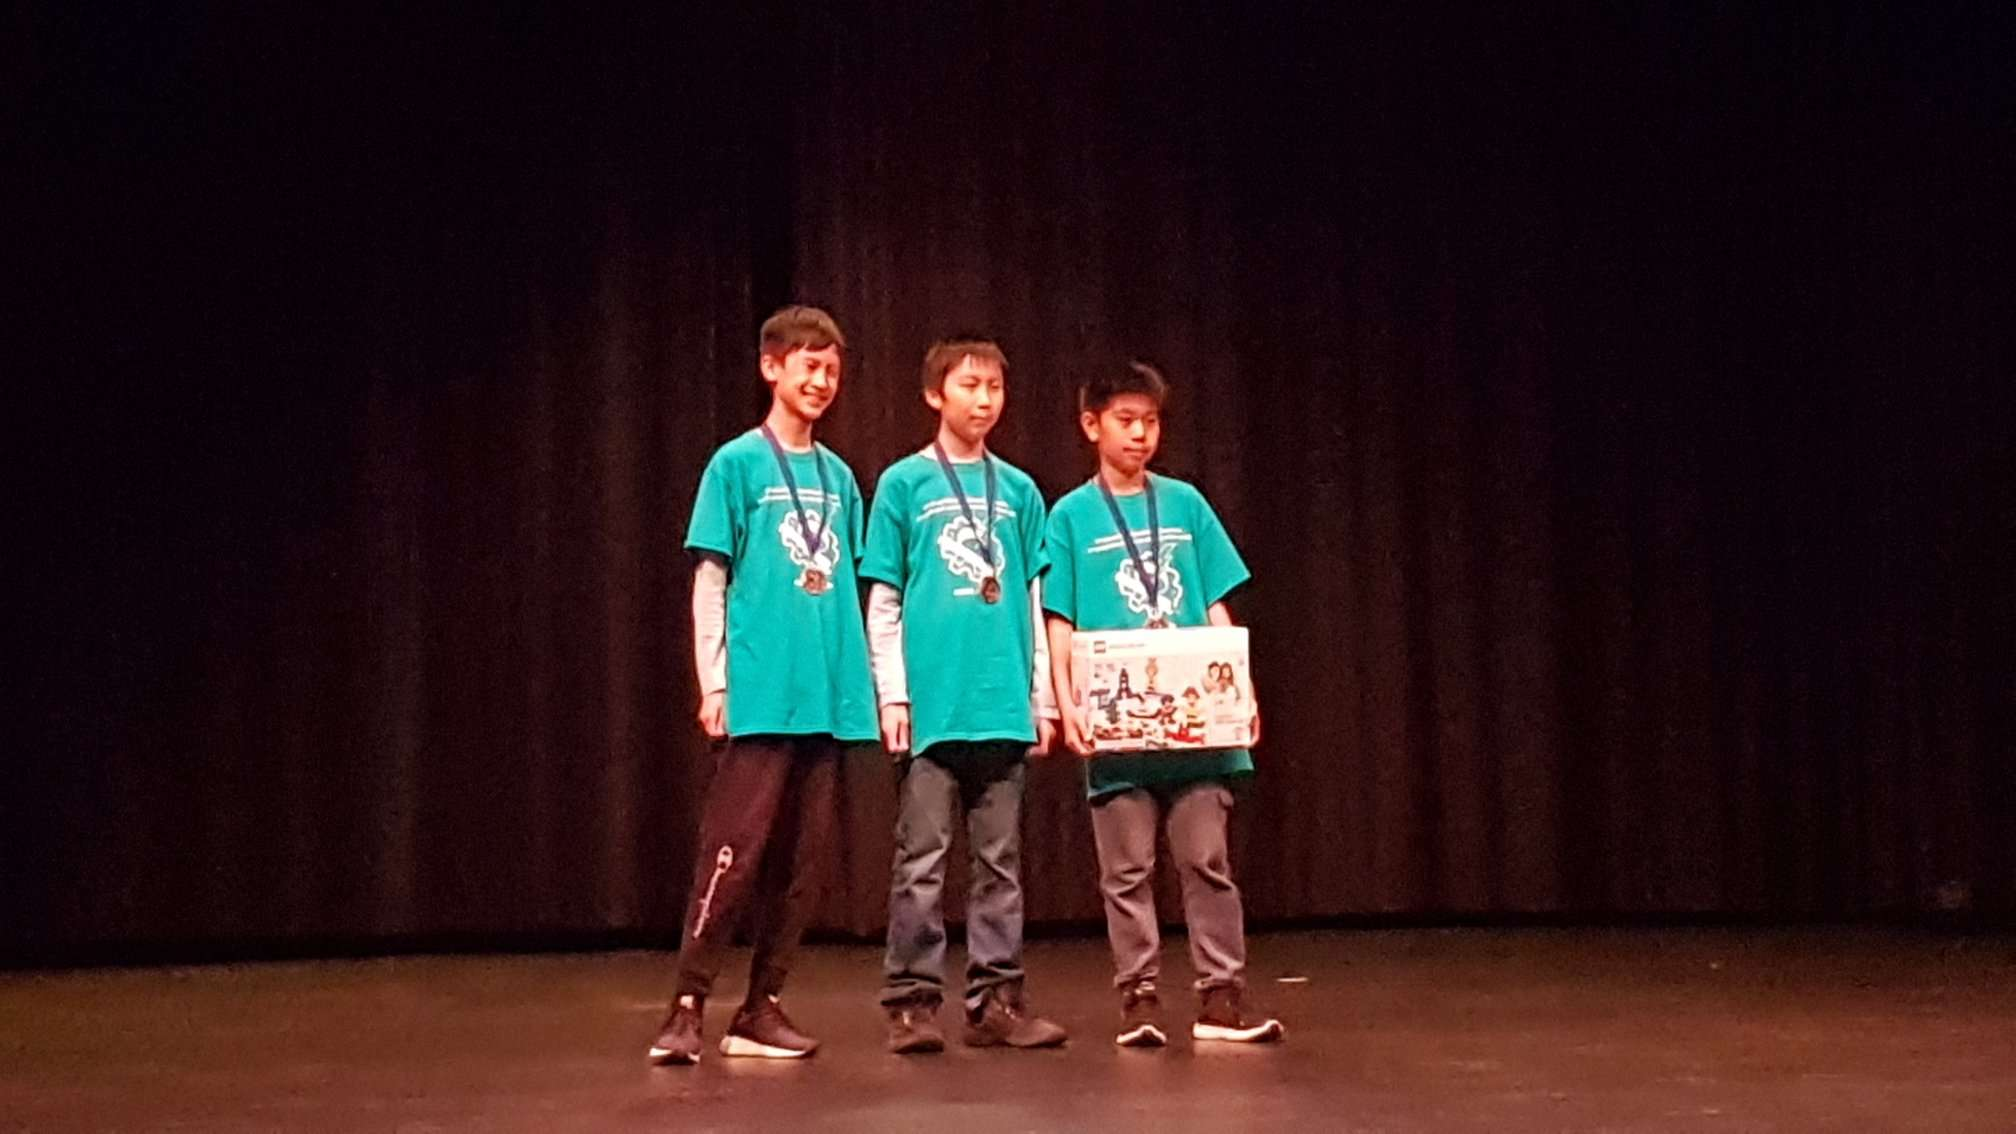 2019 LEGO Robotic Competition - Third Place Prize